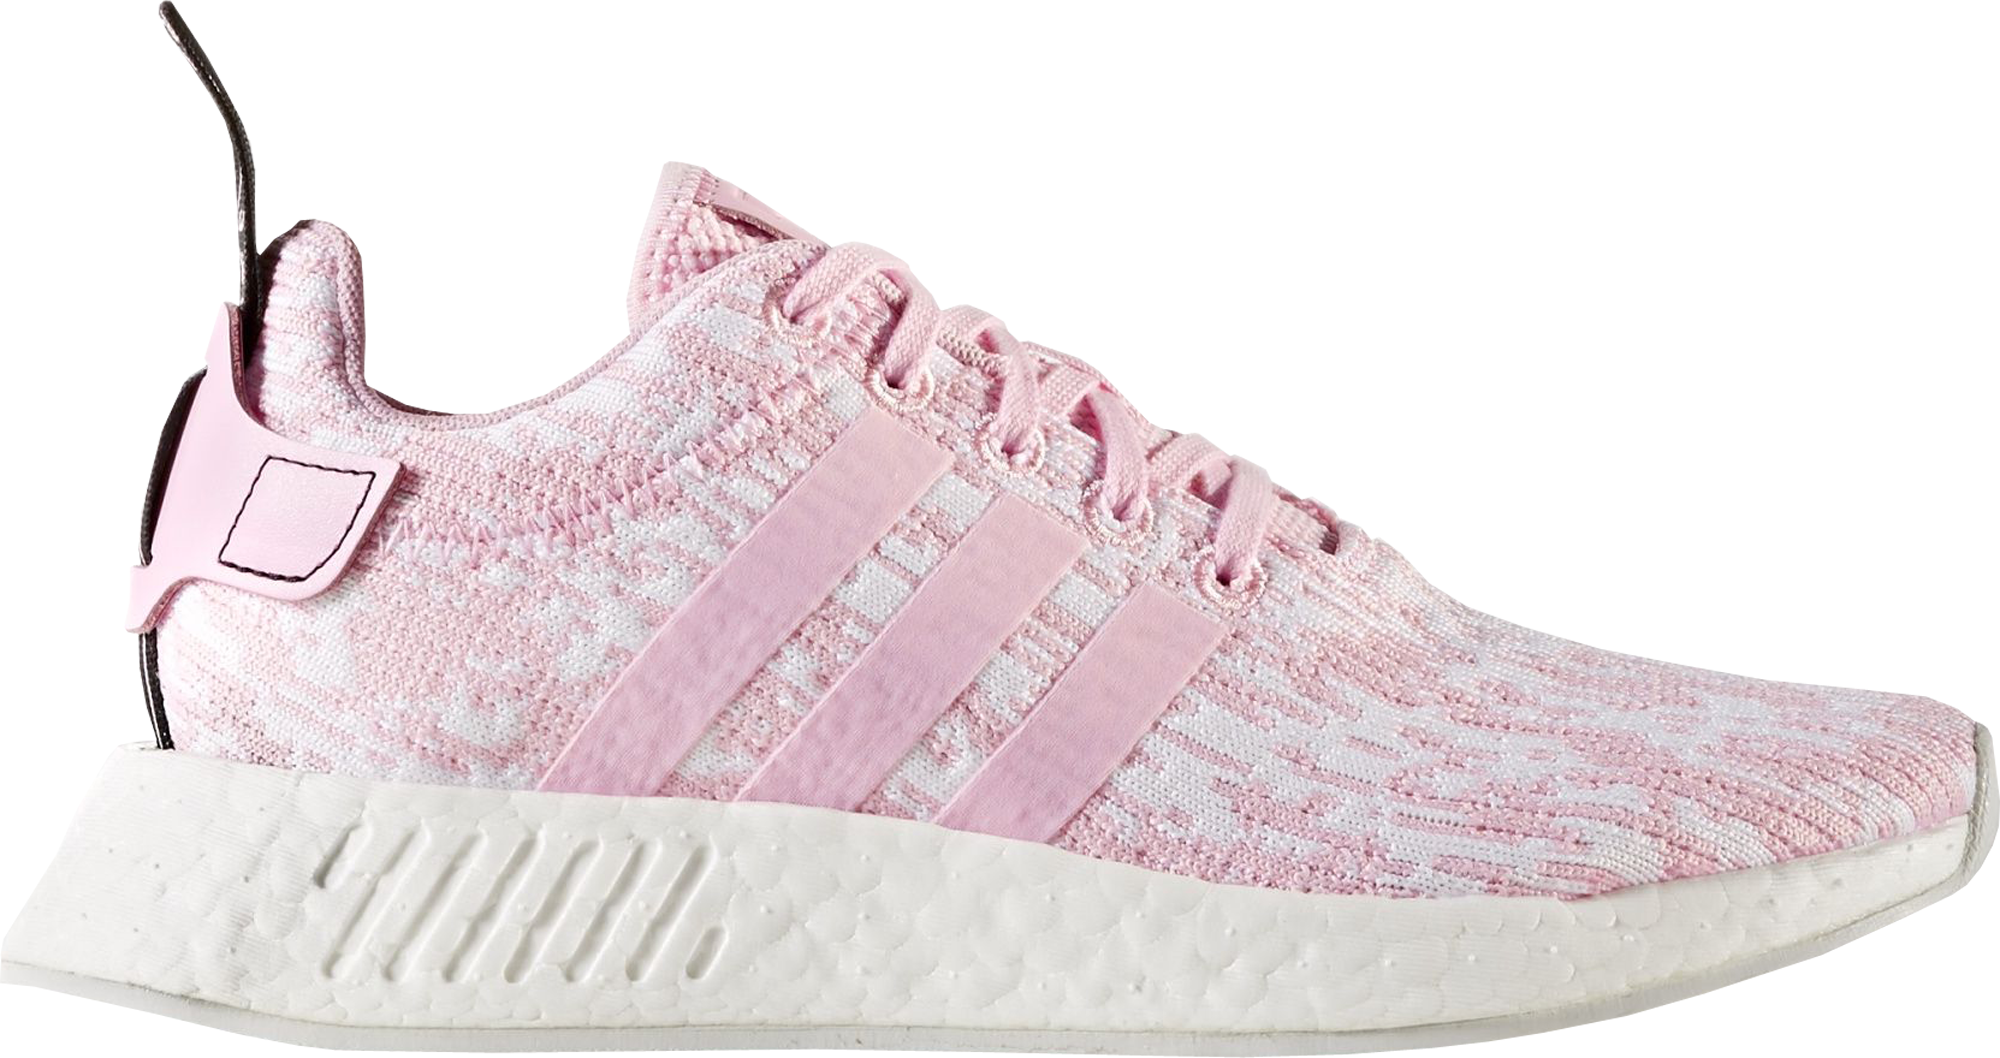 adidas NMD R2 Wonder Pink (W) - StockX News